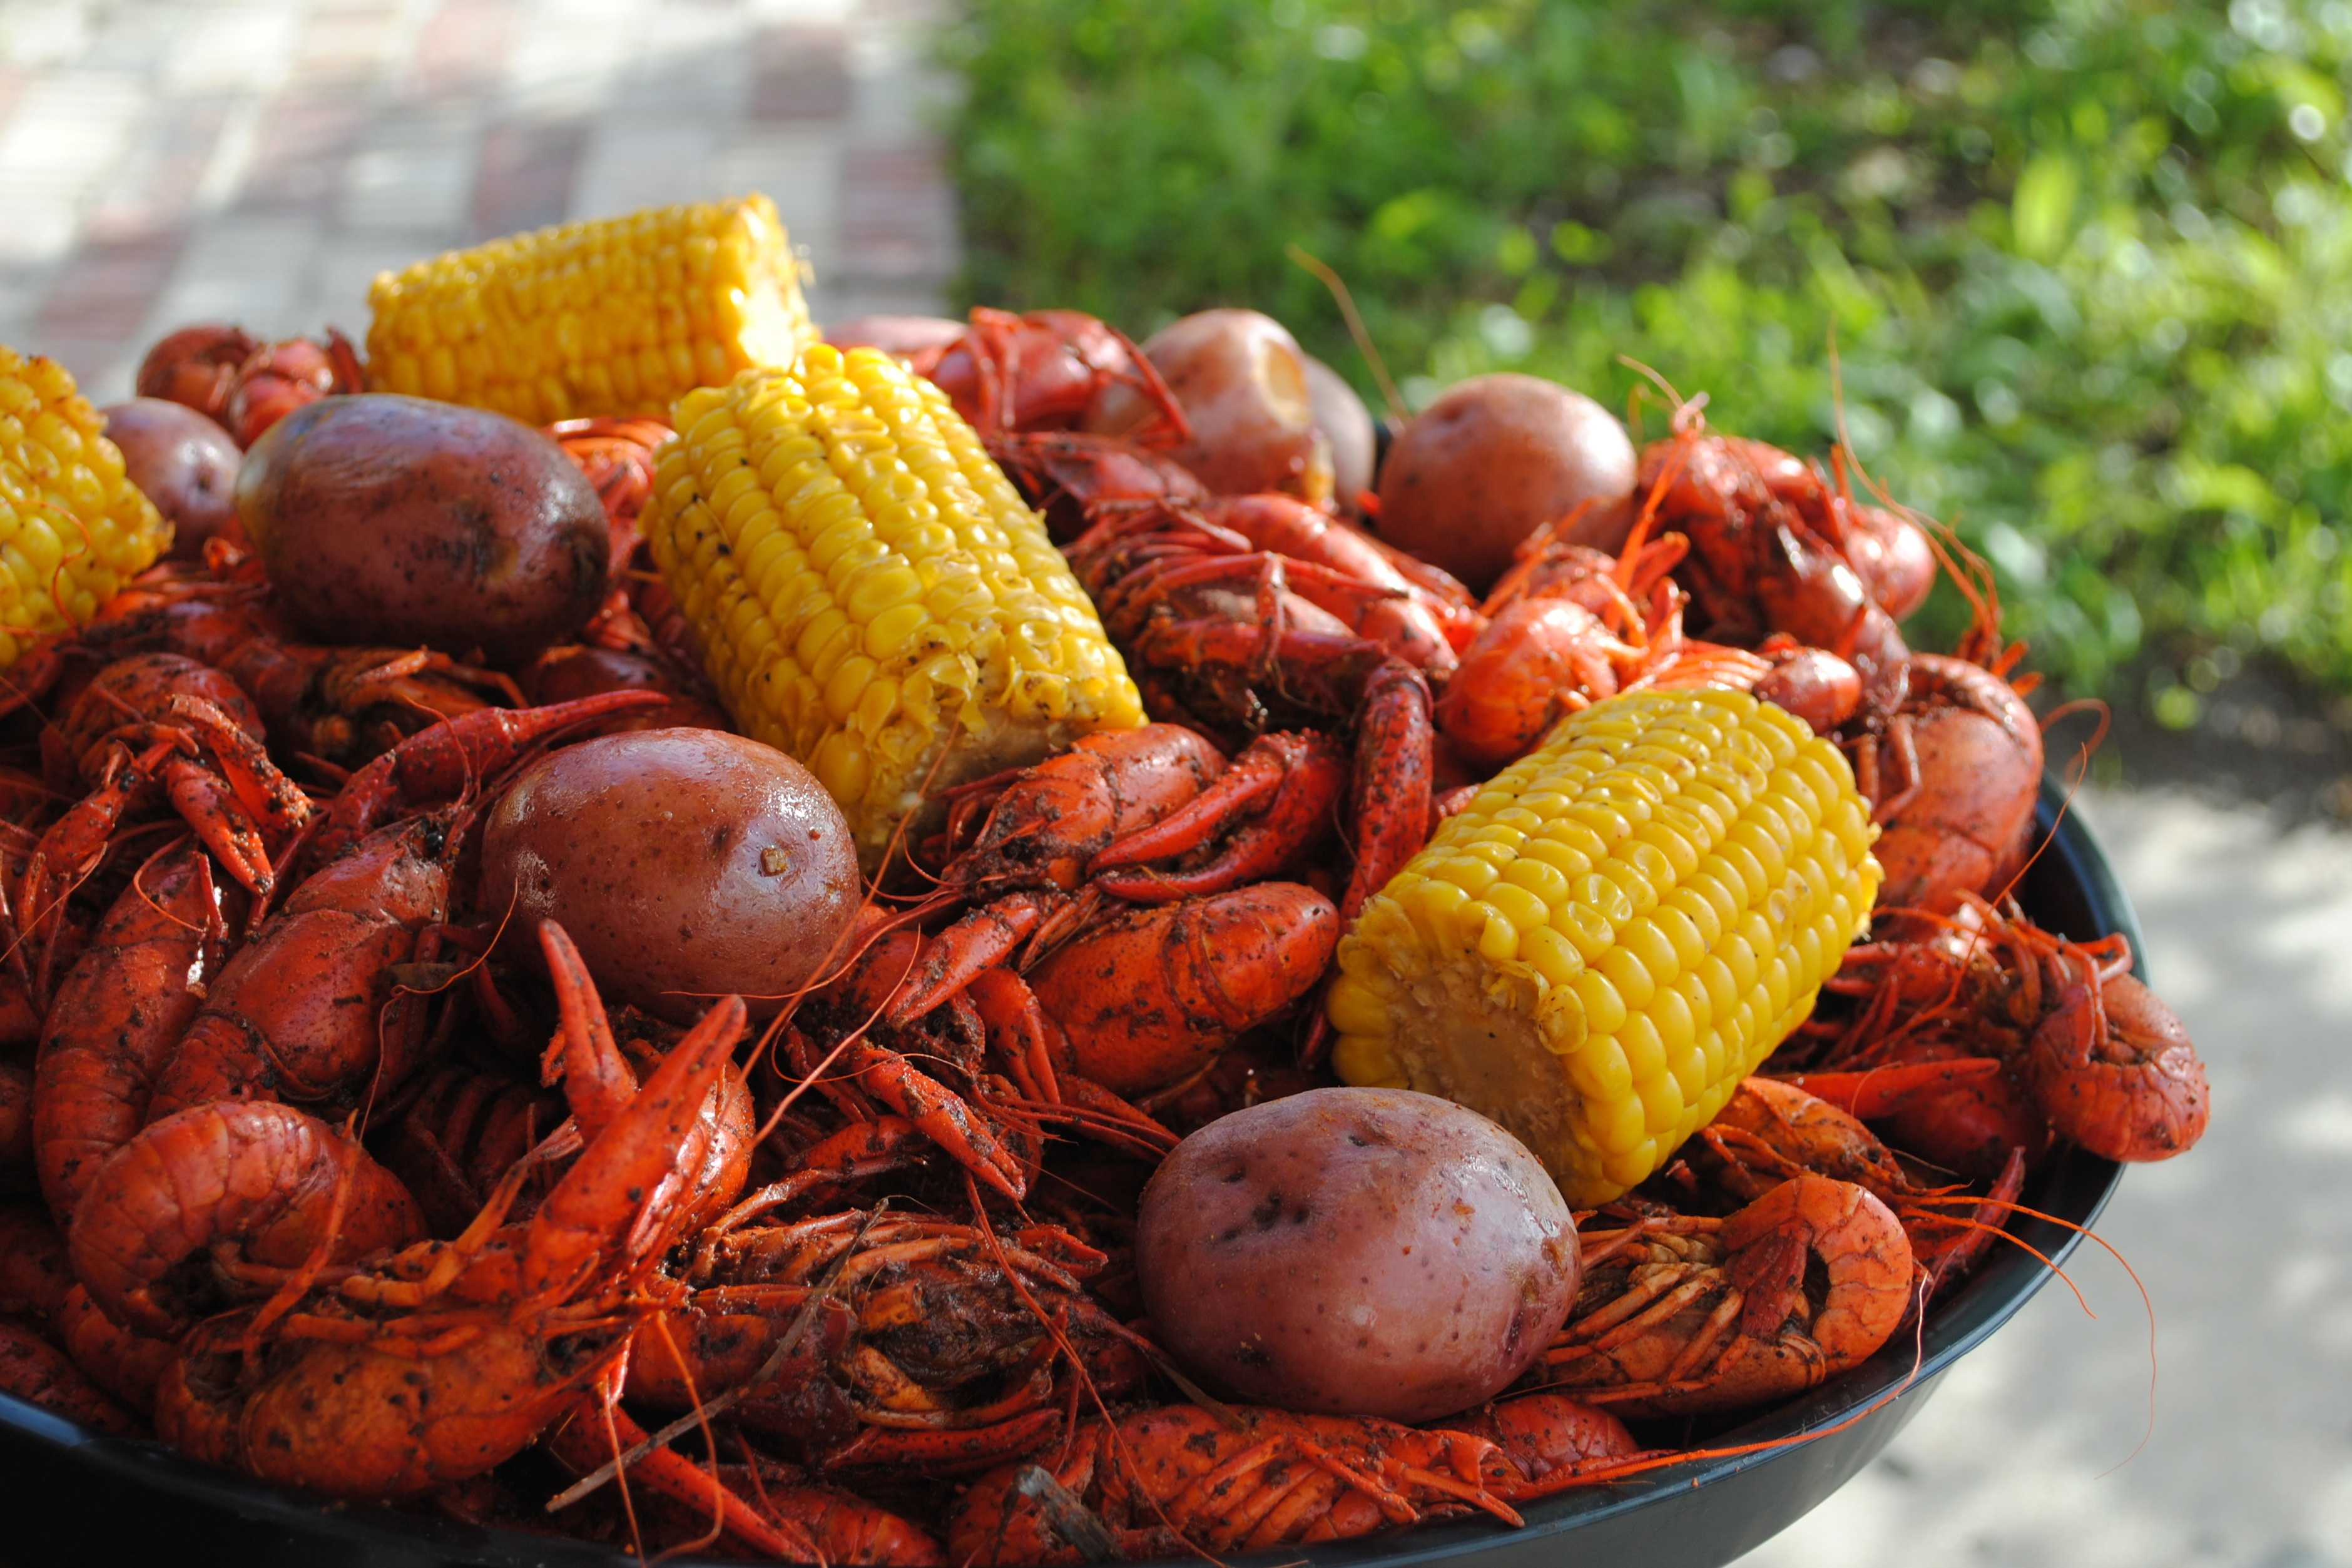 Boiled Crawfish with Corn and Potato